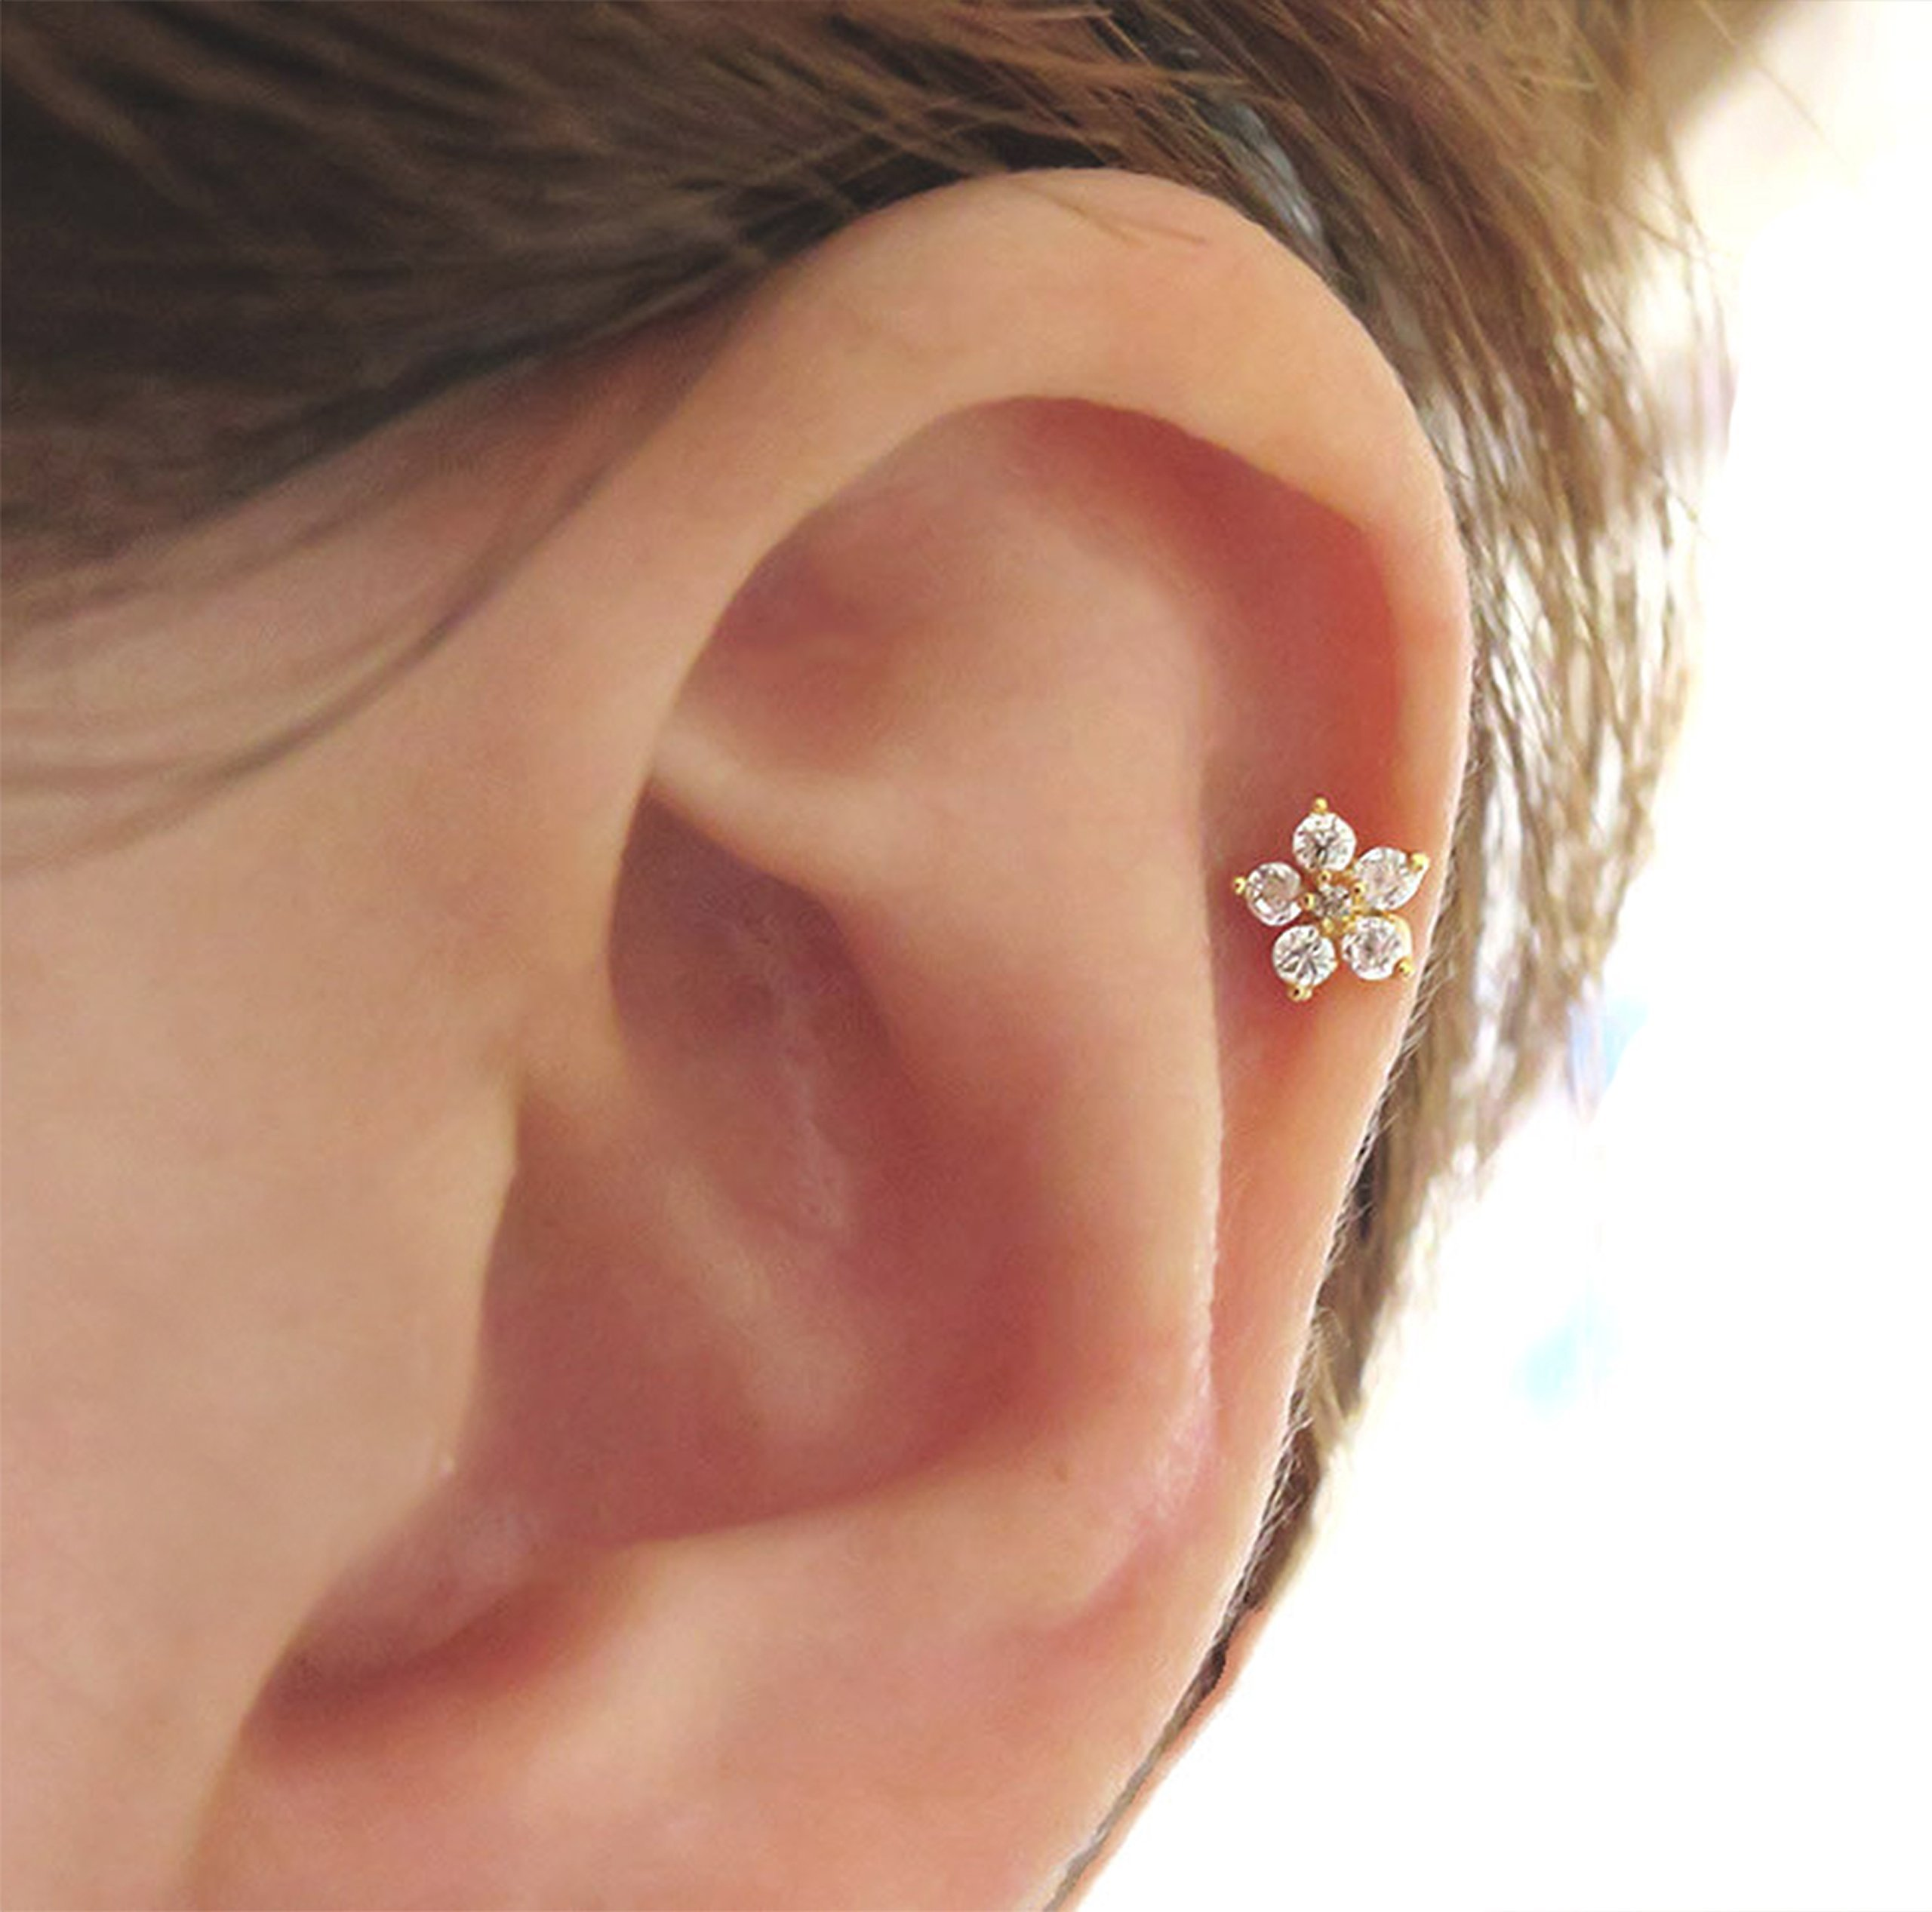 16g 316L surgical stainless steel CZ Flower Stud Earring